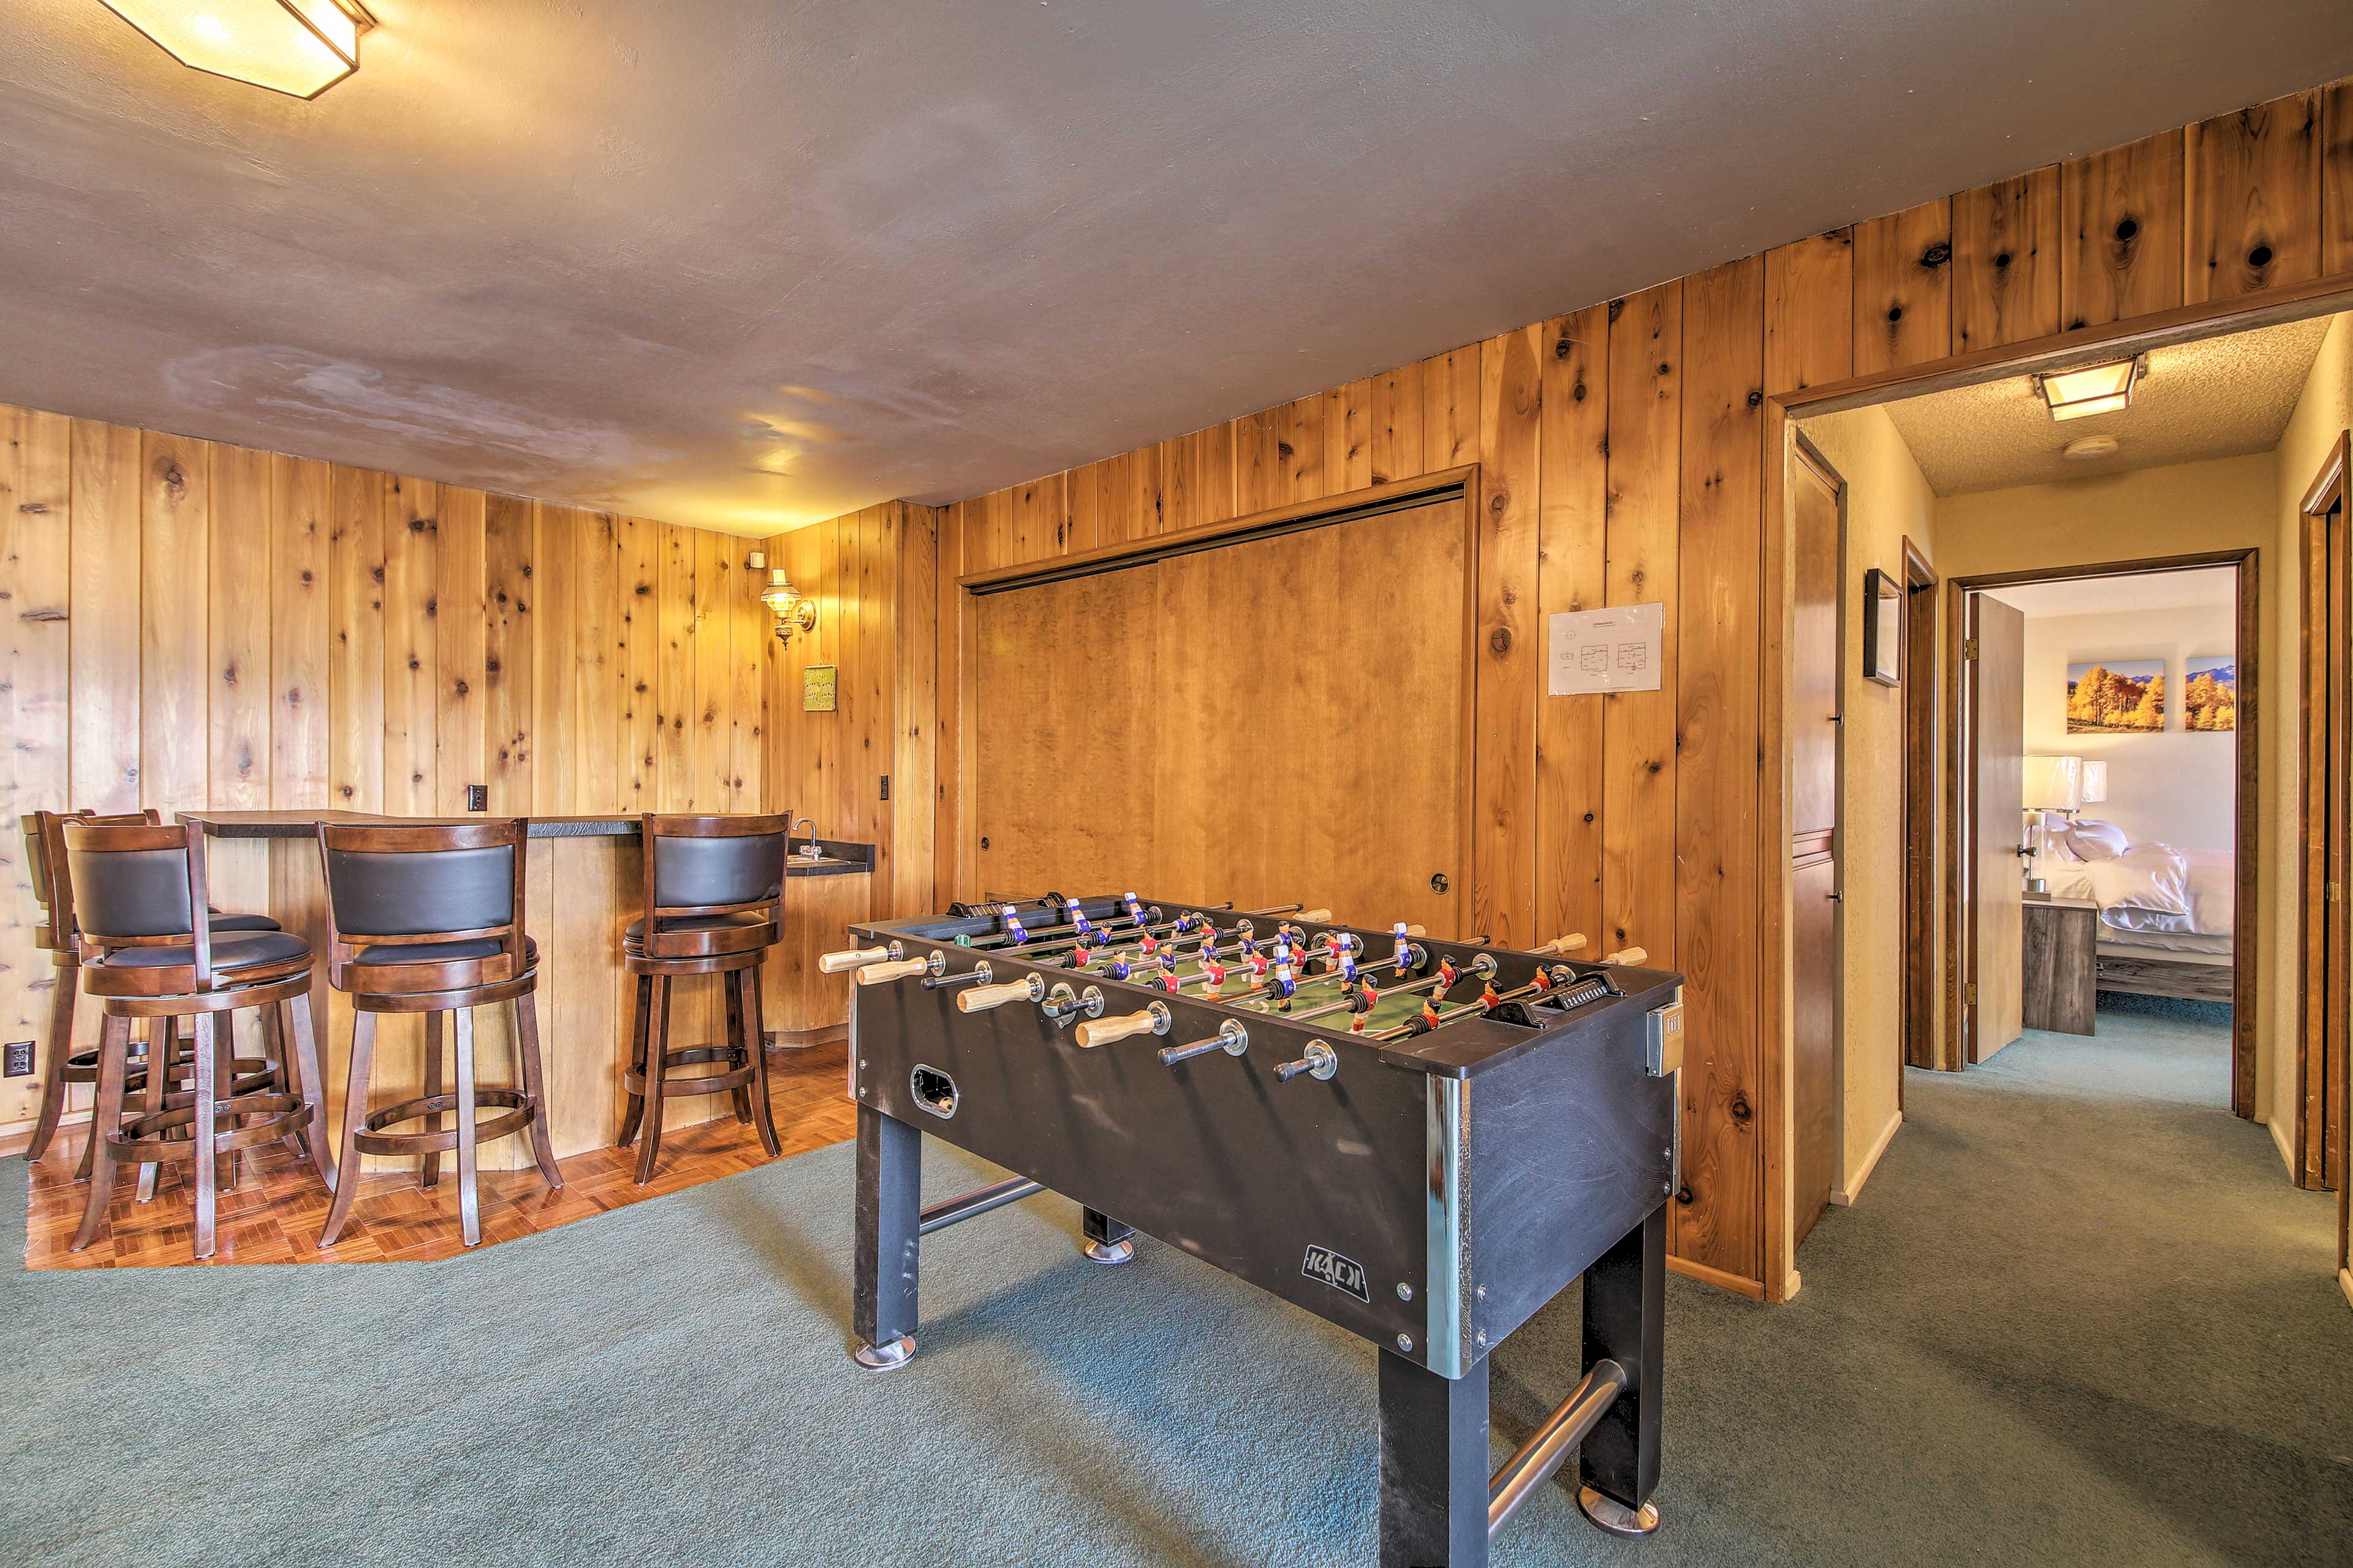 Play a game of Foosball with the kids.